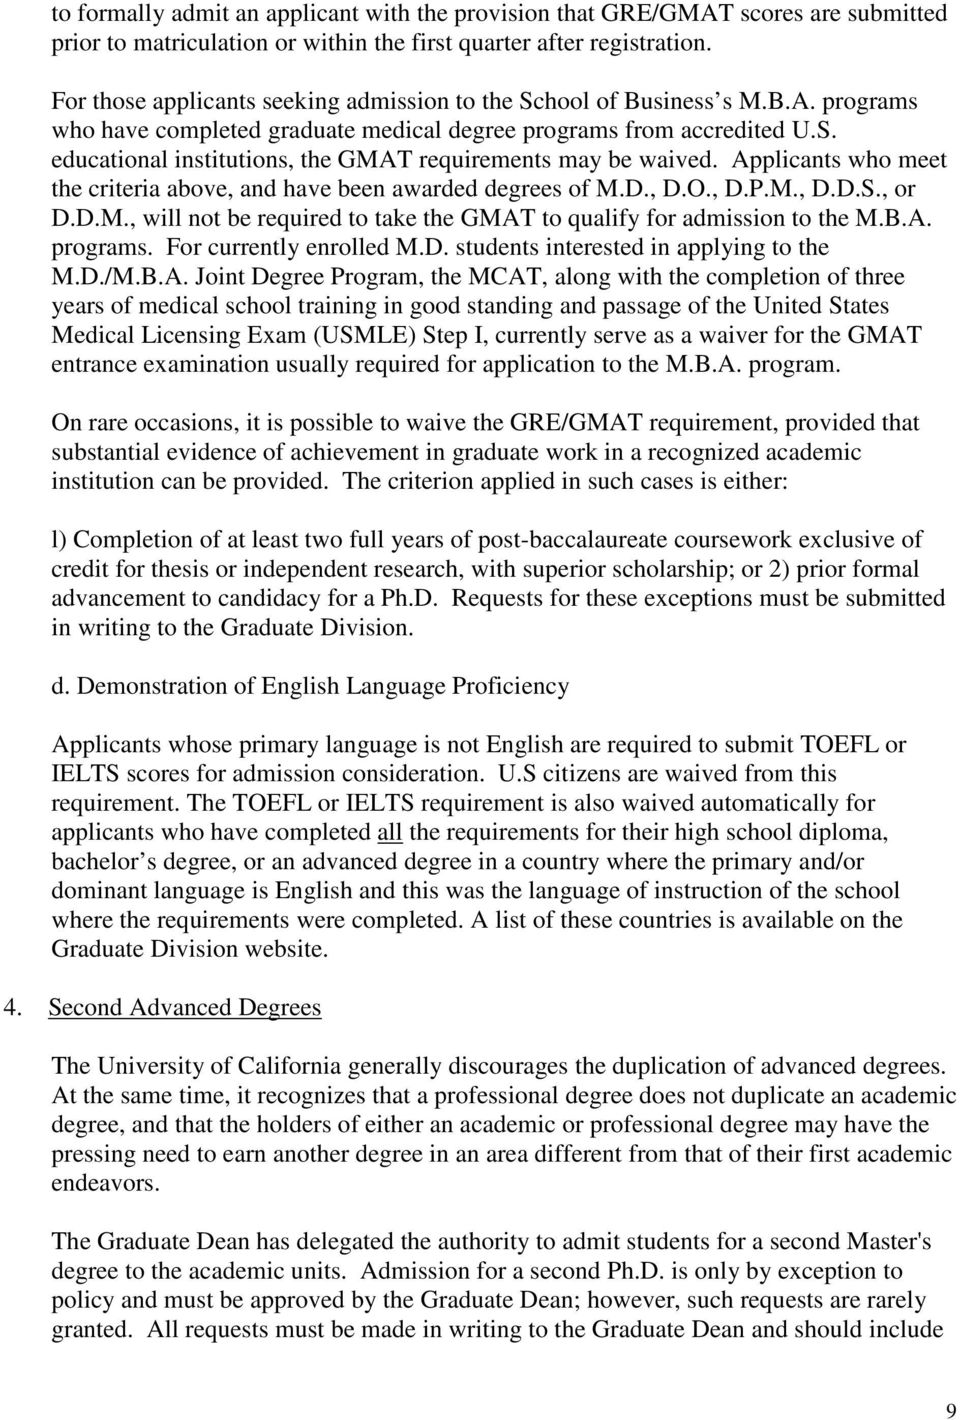 Applicants who meet the criteria above, and have been awarded degrees of M.D., D.O., D.P.M., D.D.S., or D.D.M., will not be required to take the GMAT to qualify for admission to the M.B.A. programs.